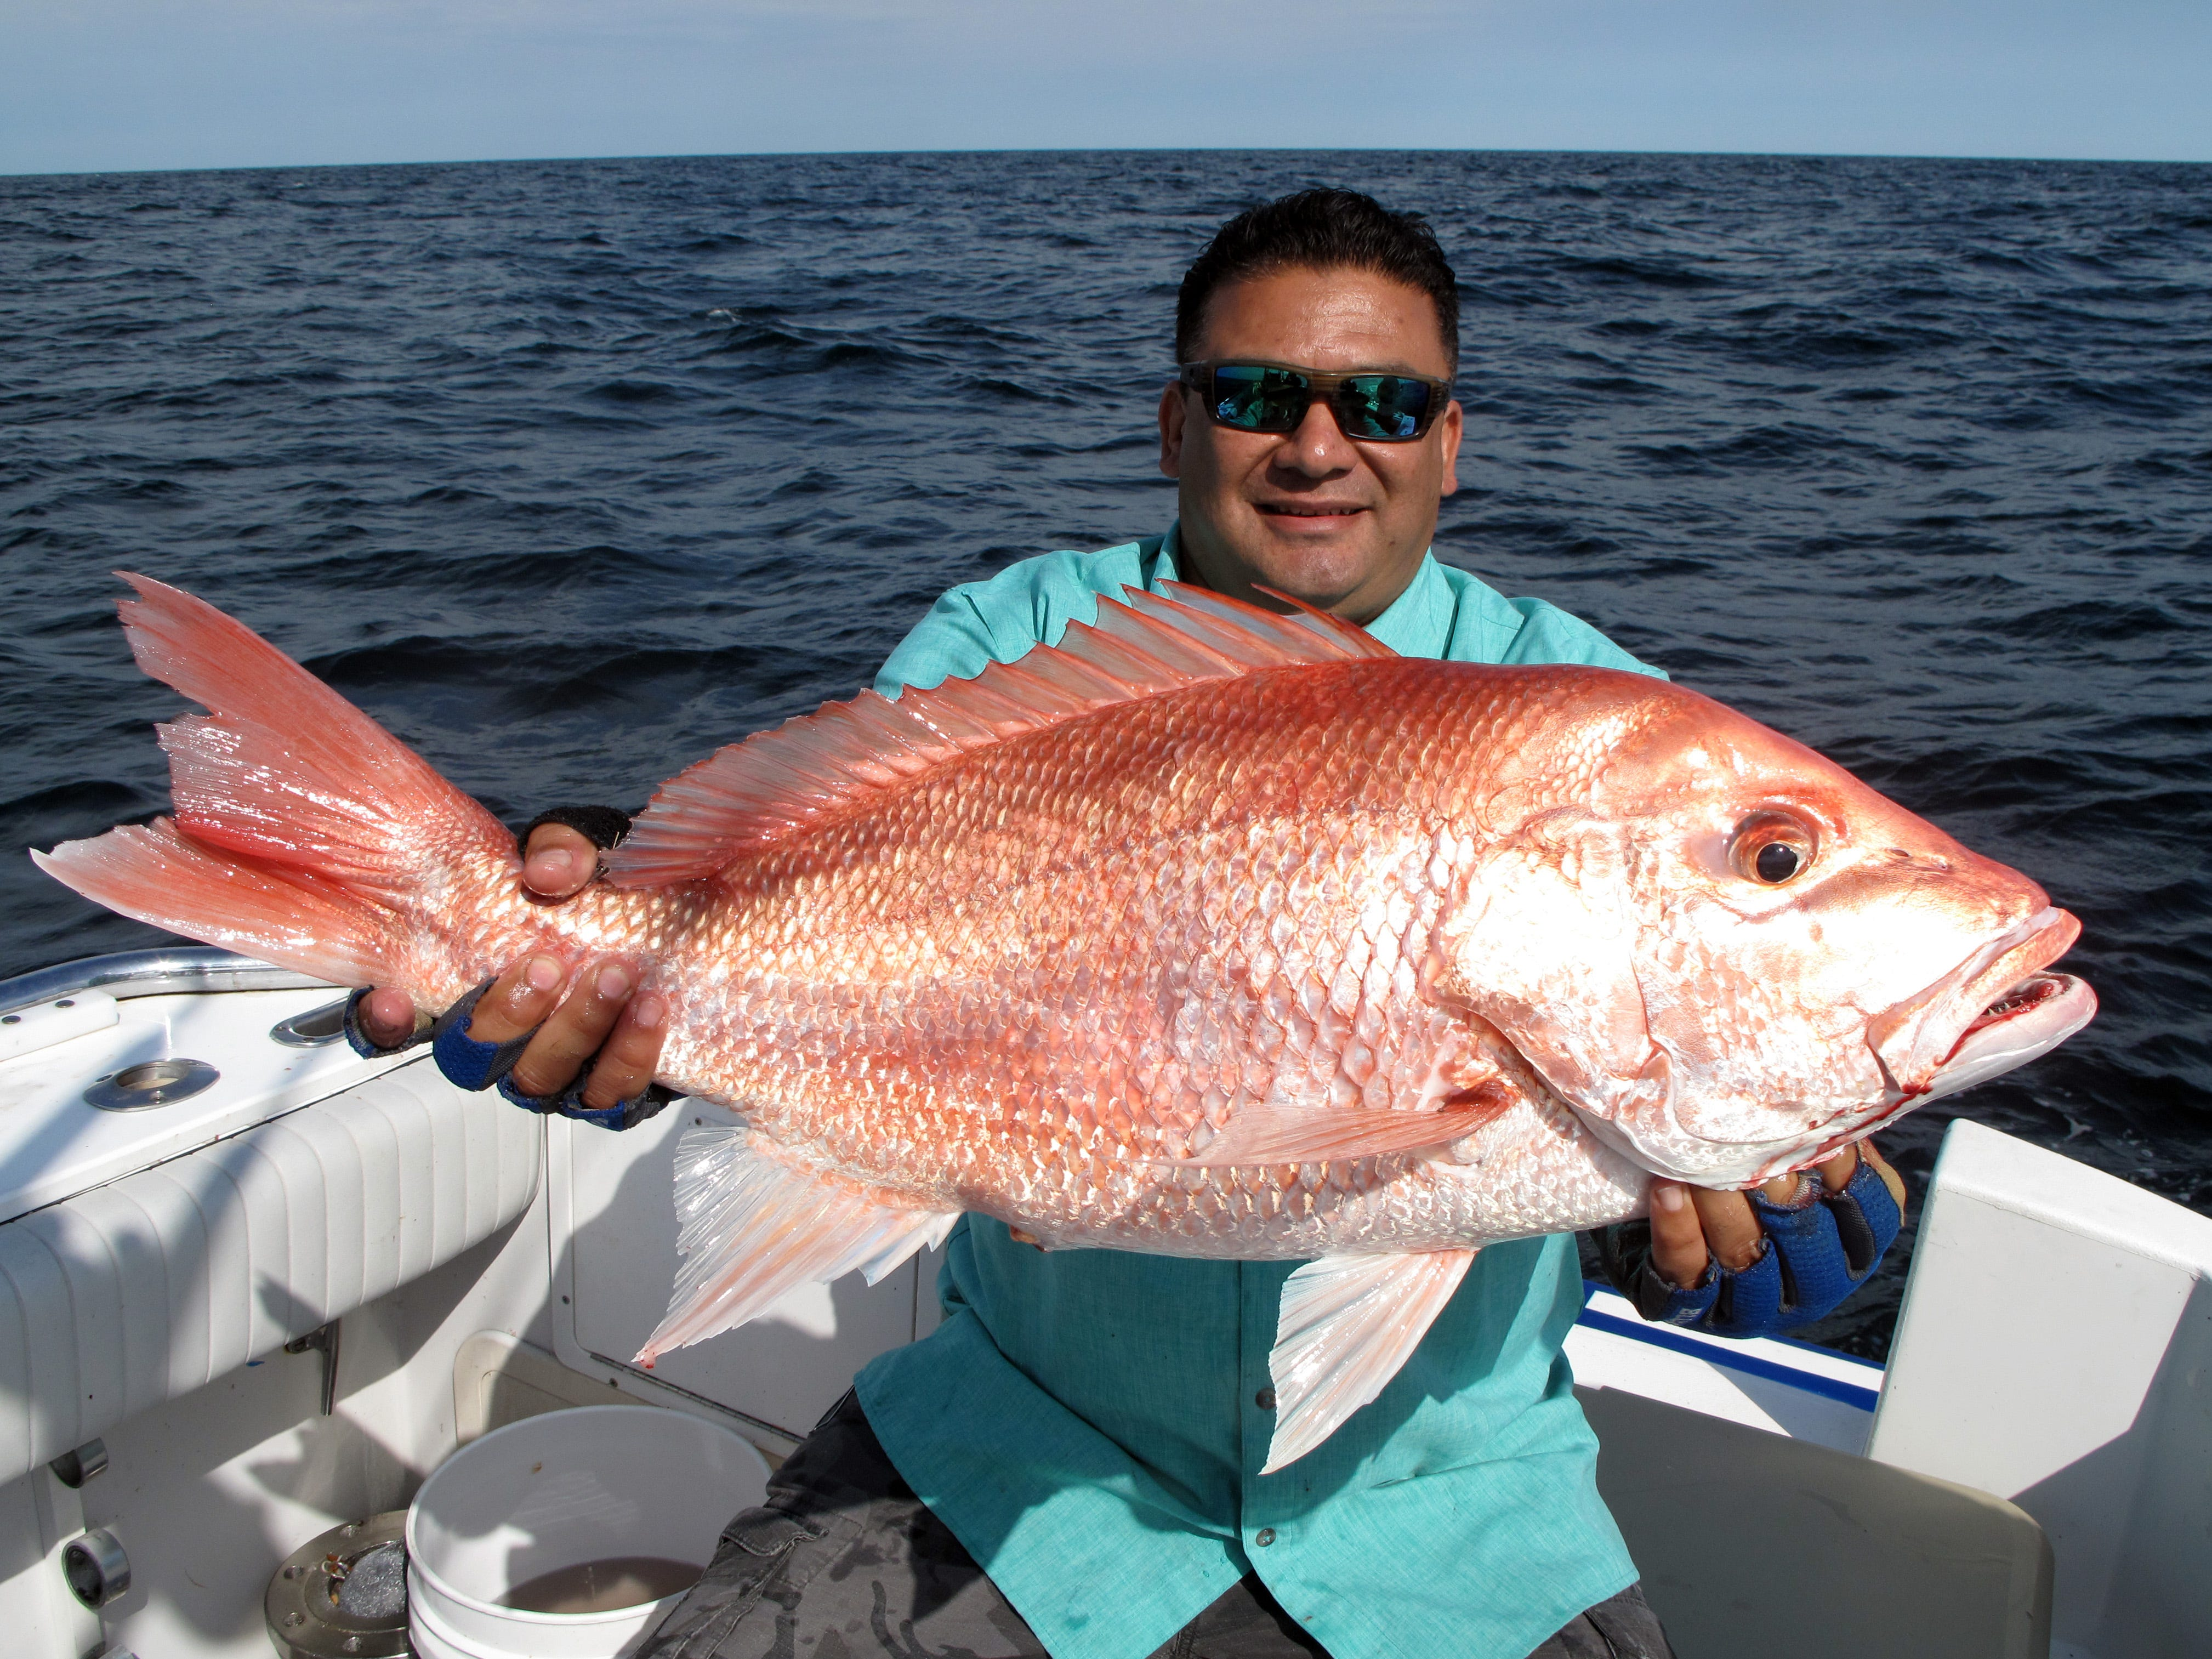 Havier Maldonado caught this big red snapper while fishing offshore in the Gulf.